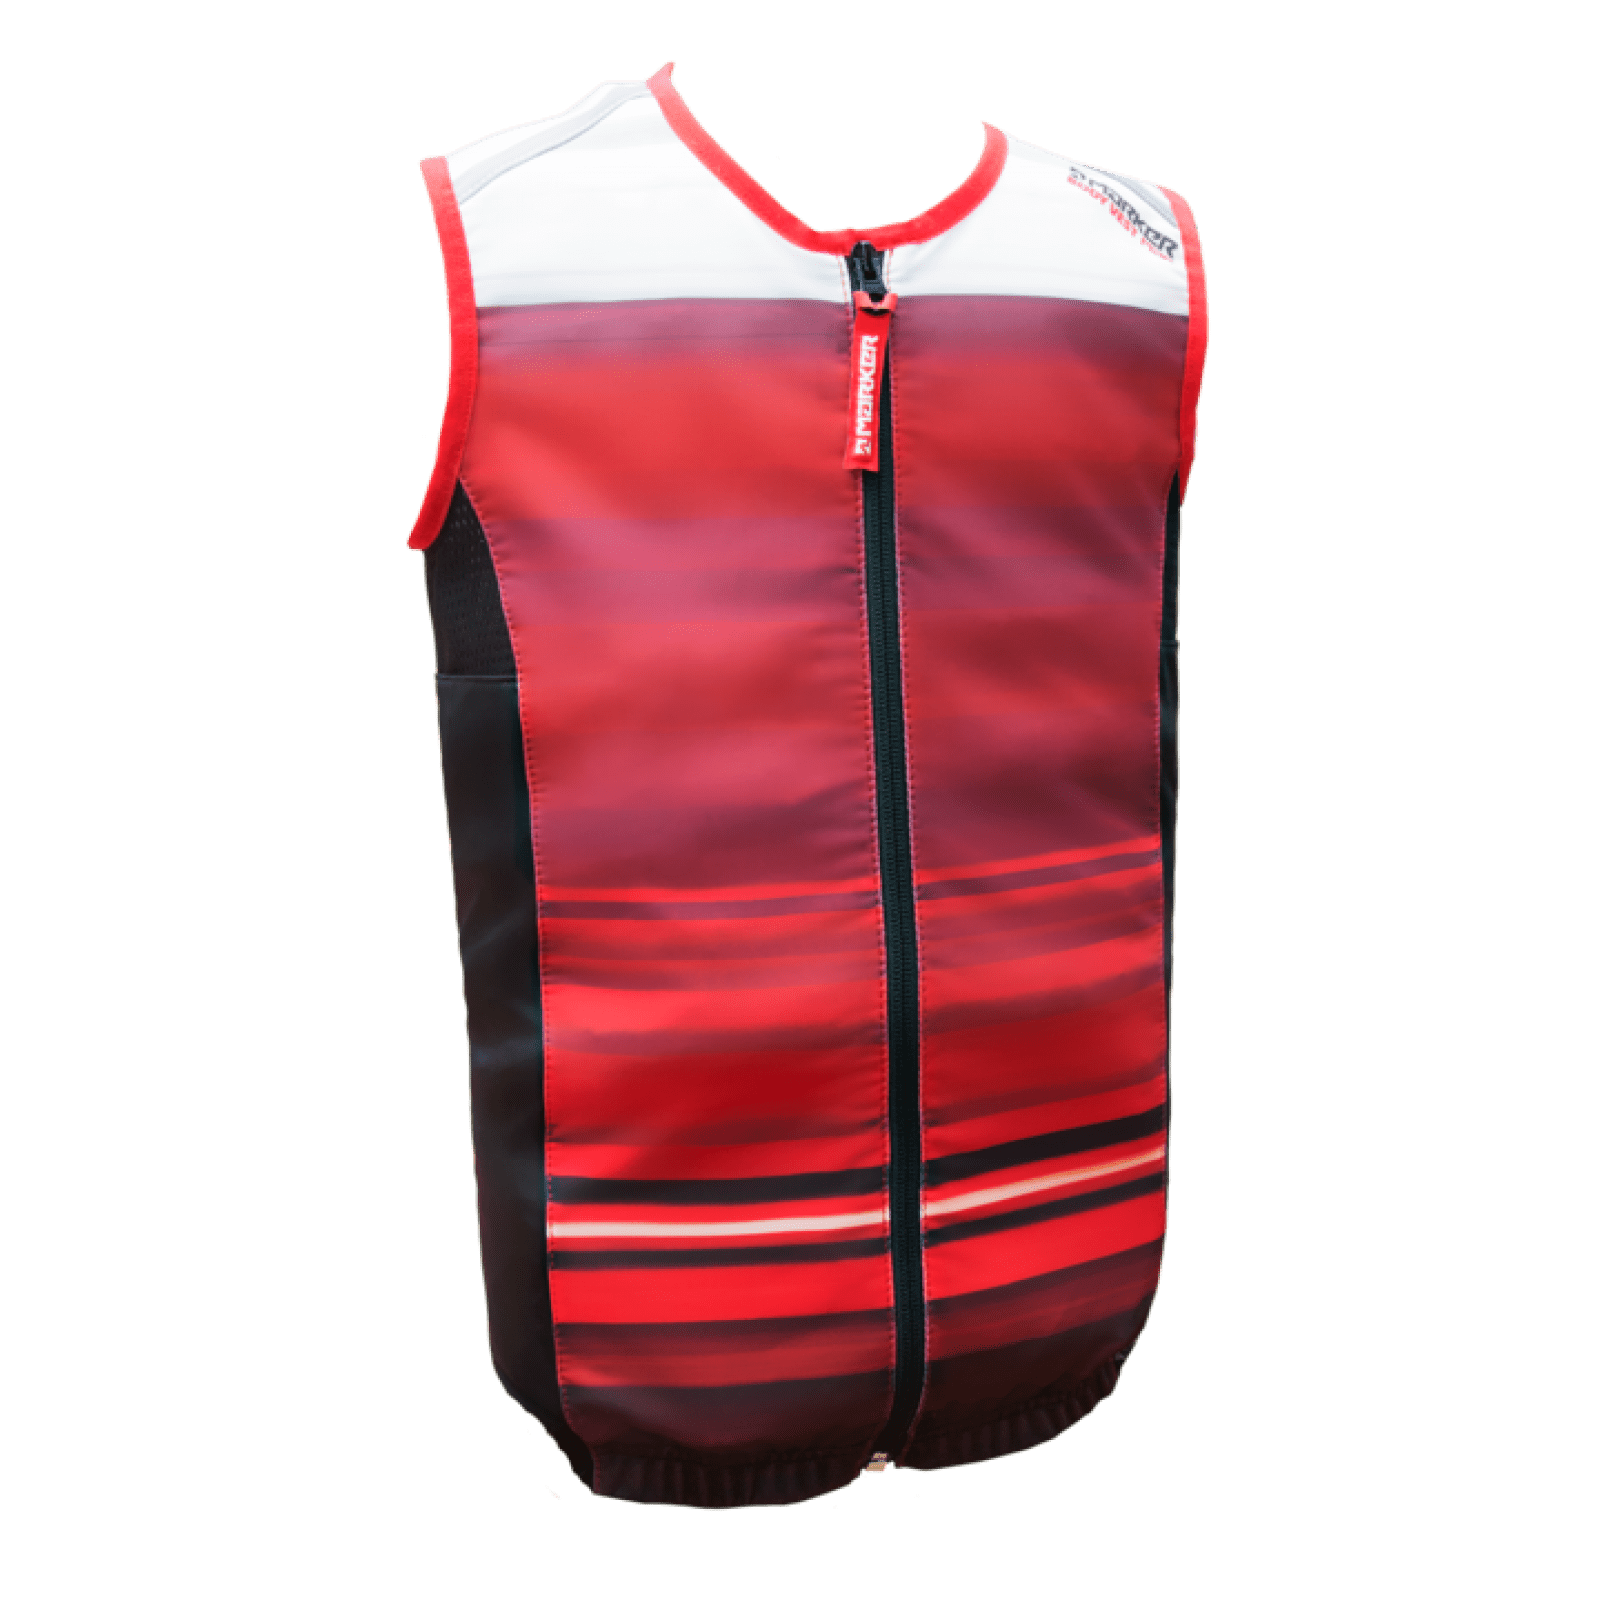 csm_Marker-1718-body-vest_MAP-youth_cd0a3fc7f6